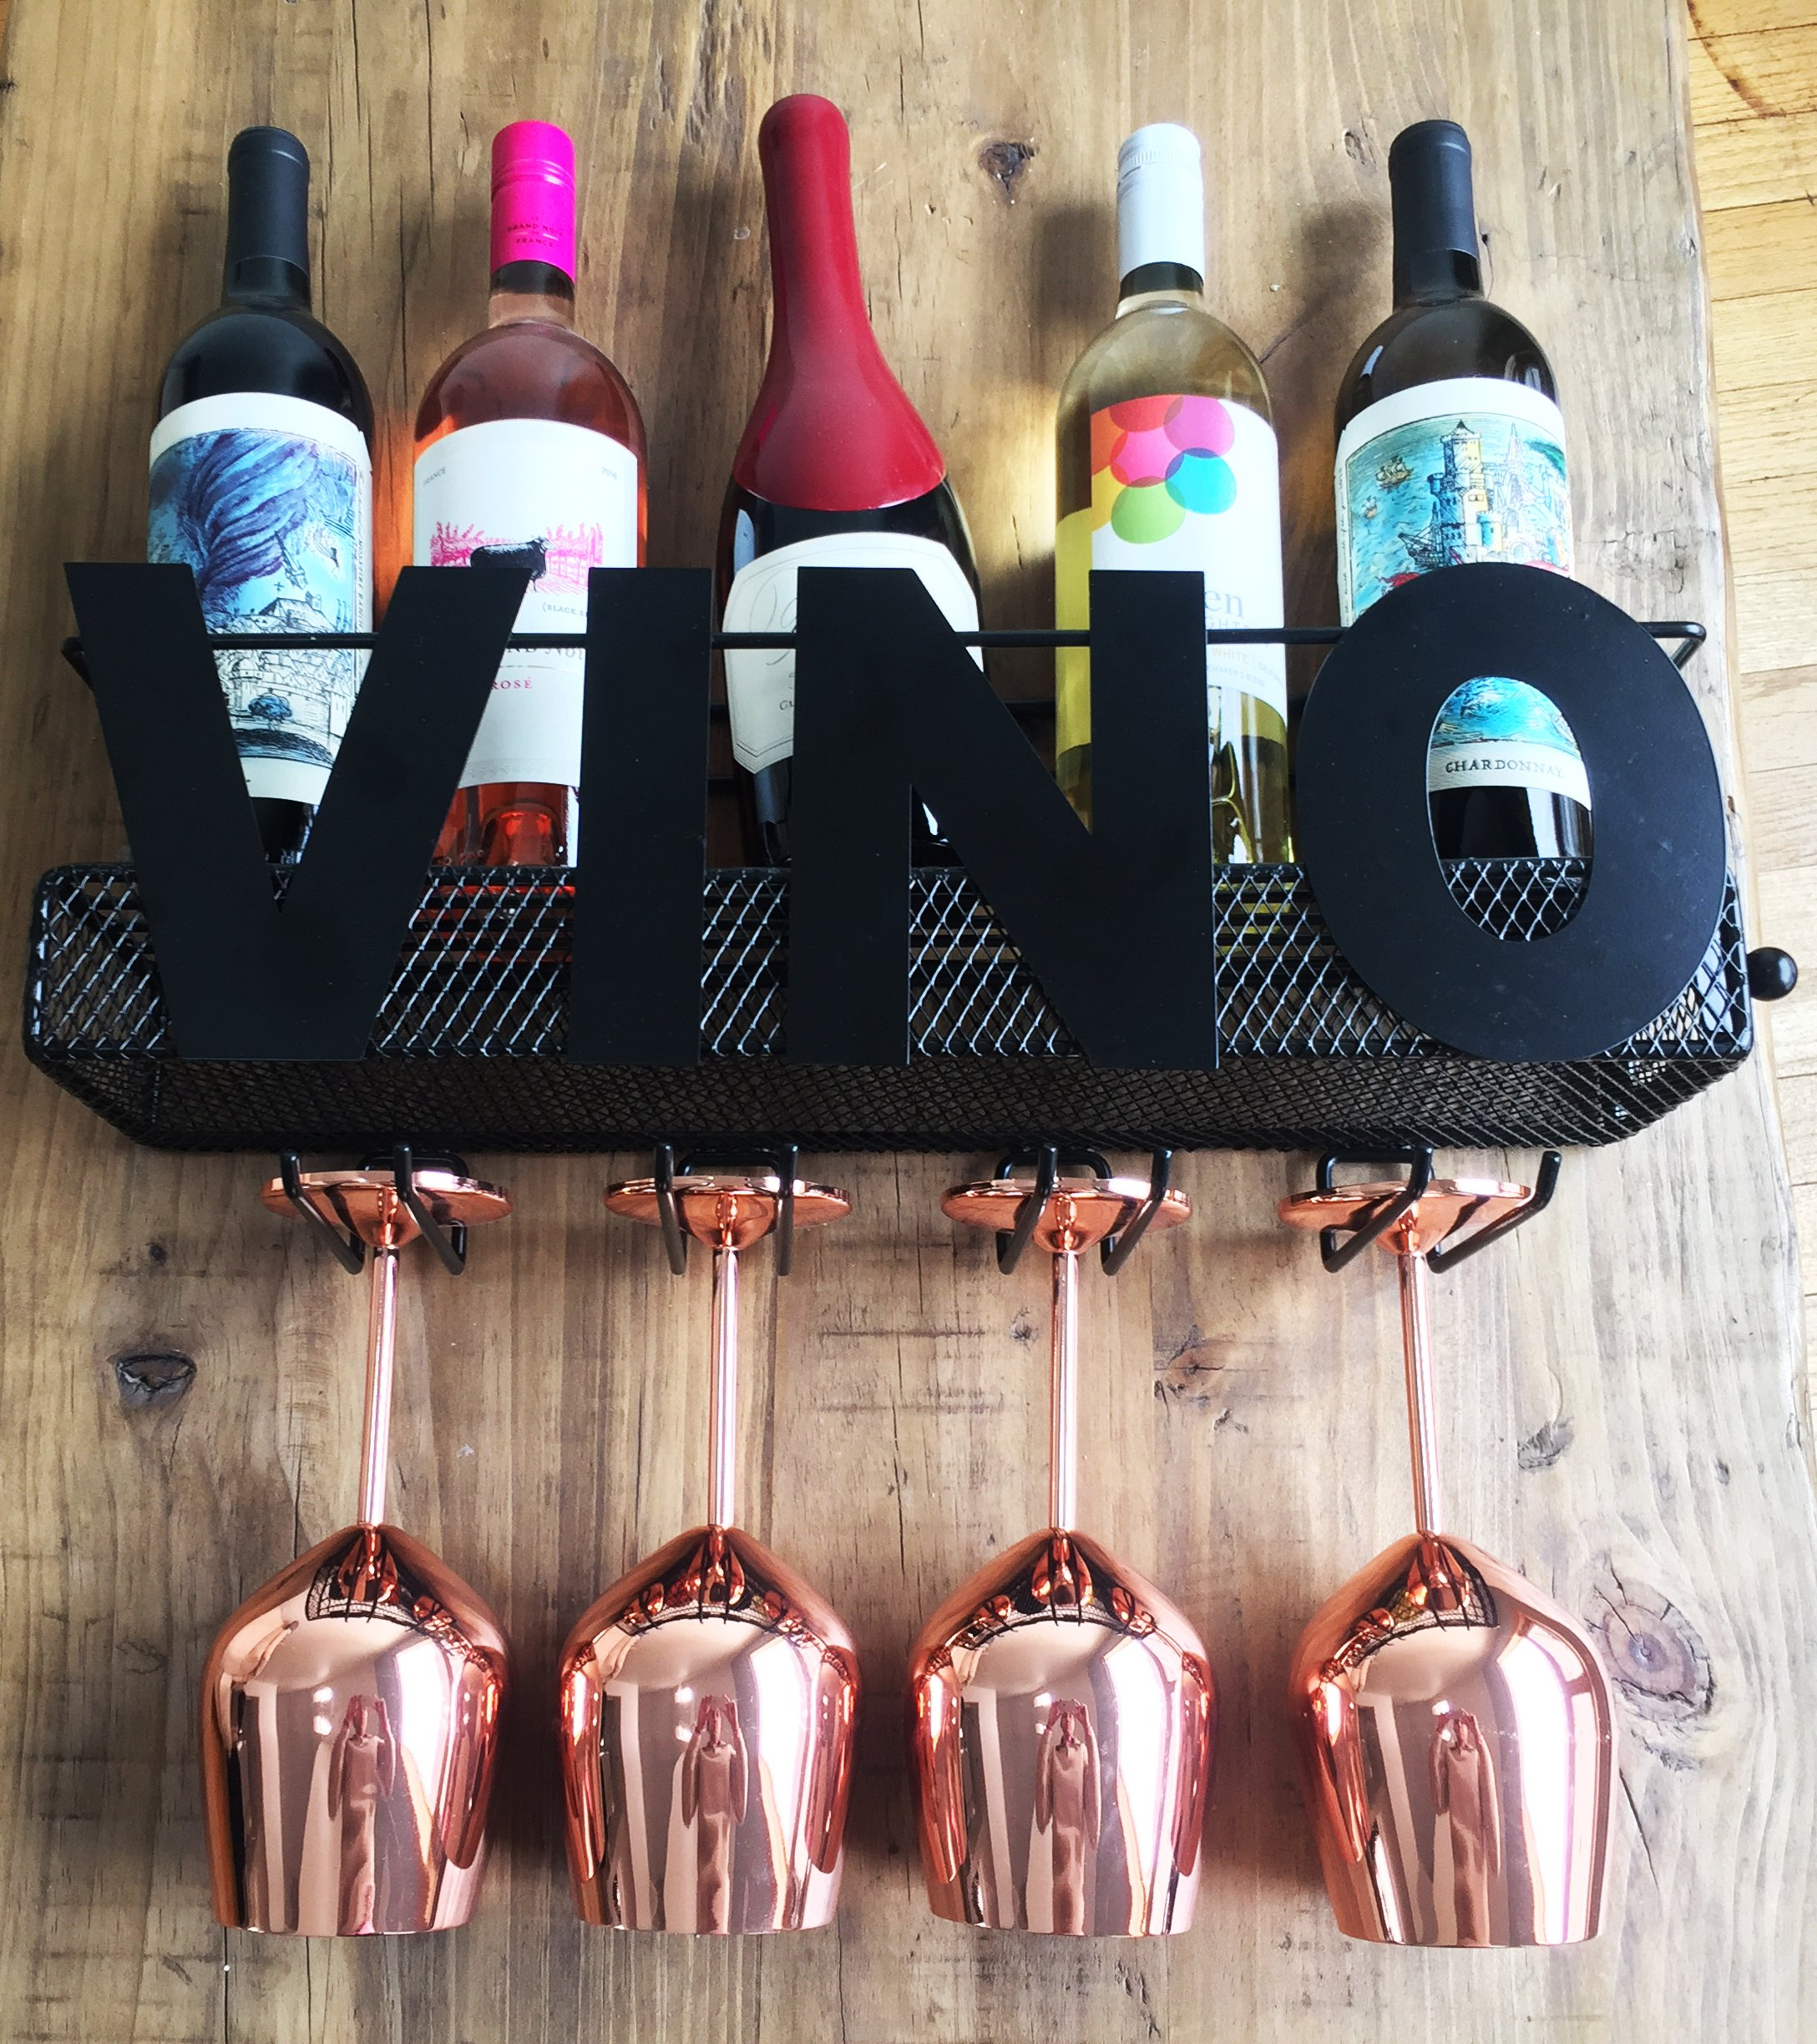 Cellar Door Selections VINO Metal Wall Mount Wine Rack - Holds 5 Wine Bottles, 4 Wine Glasses with Cork Storage – The Perfect Home Decor Gift for Wine Lovers – New Unique Design By by Cellar Door Selections